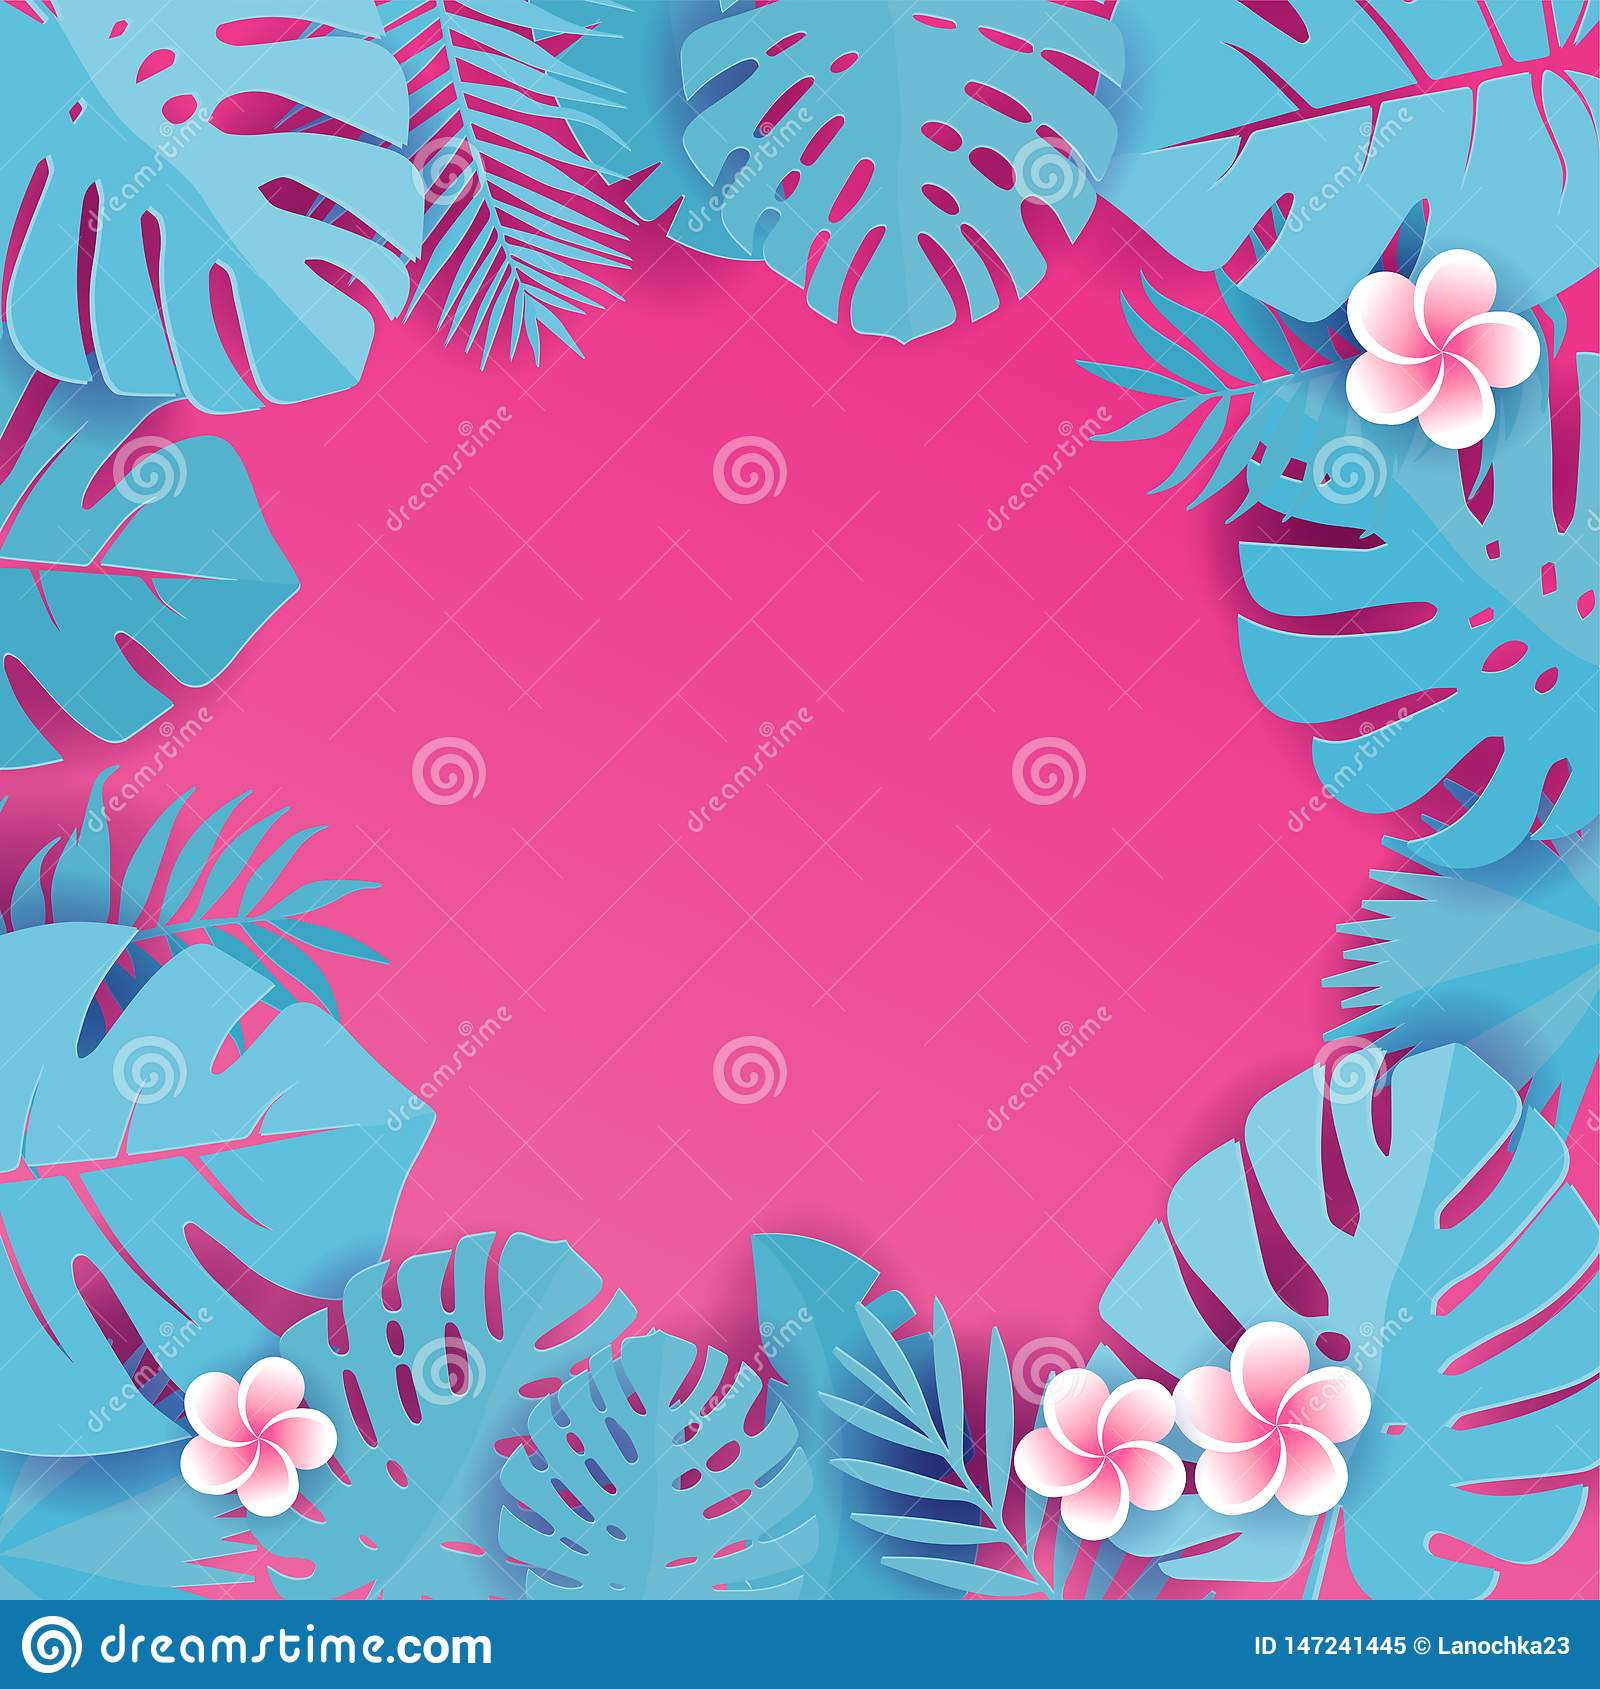 Abstract background with blue cyan tropical leaves. Jungle patternwith frangipani flowers. Floral caper cut design background.